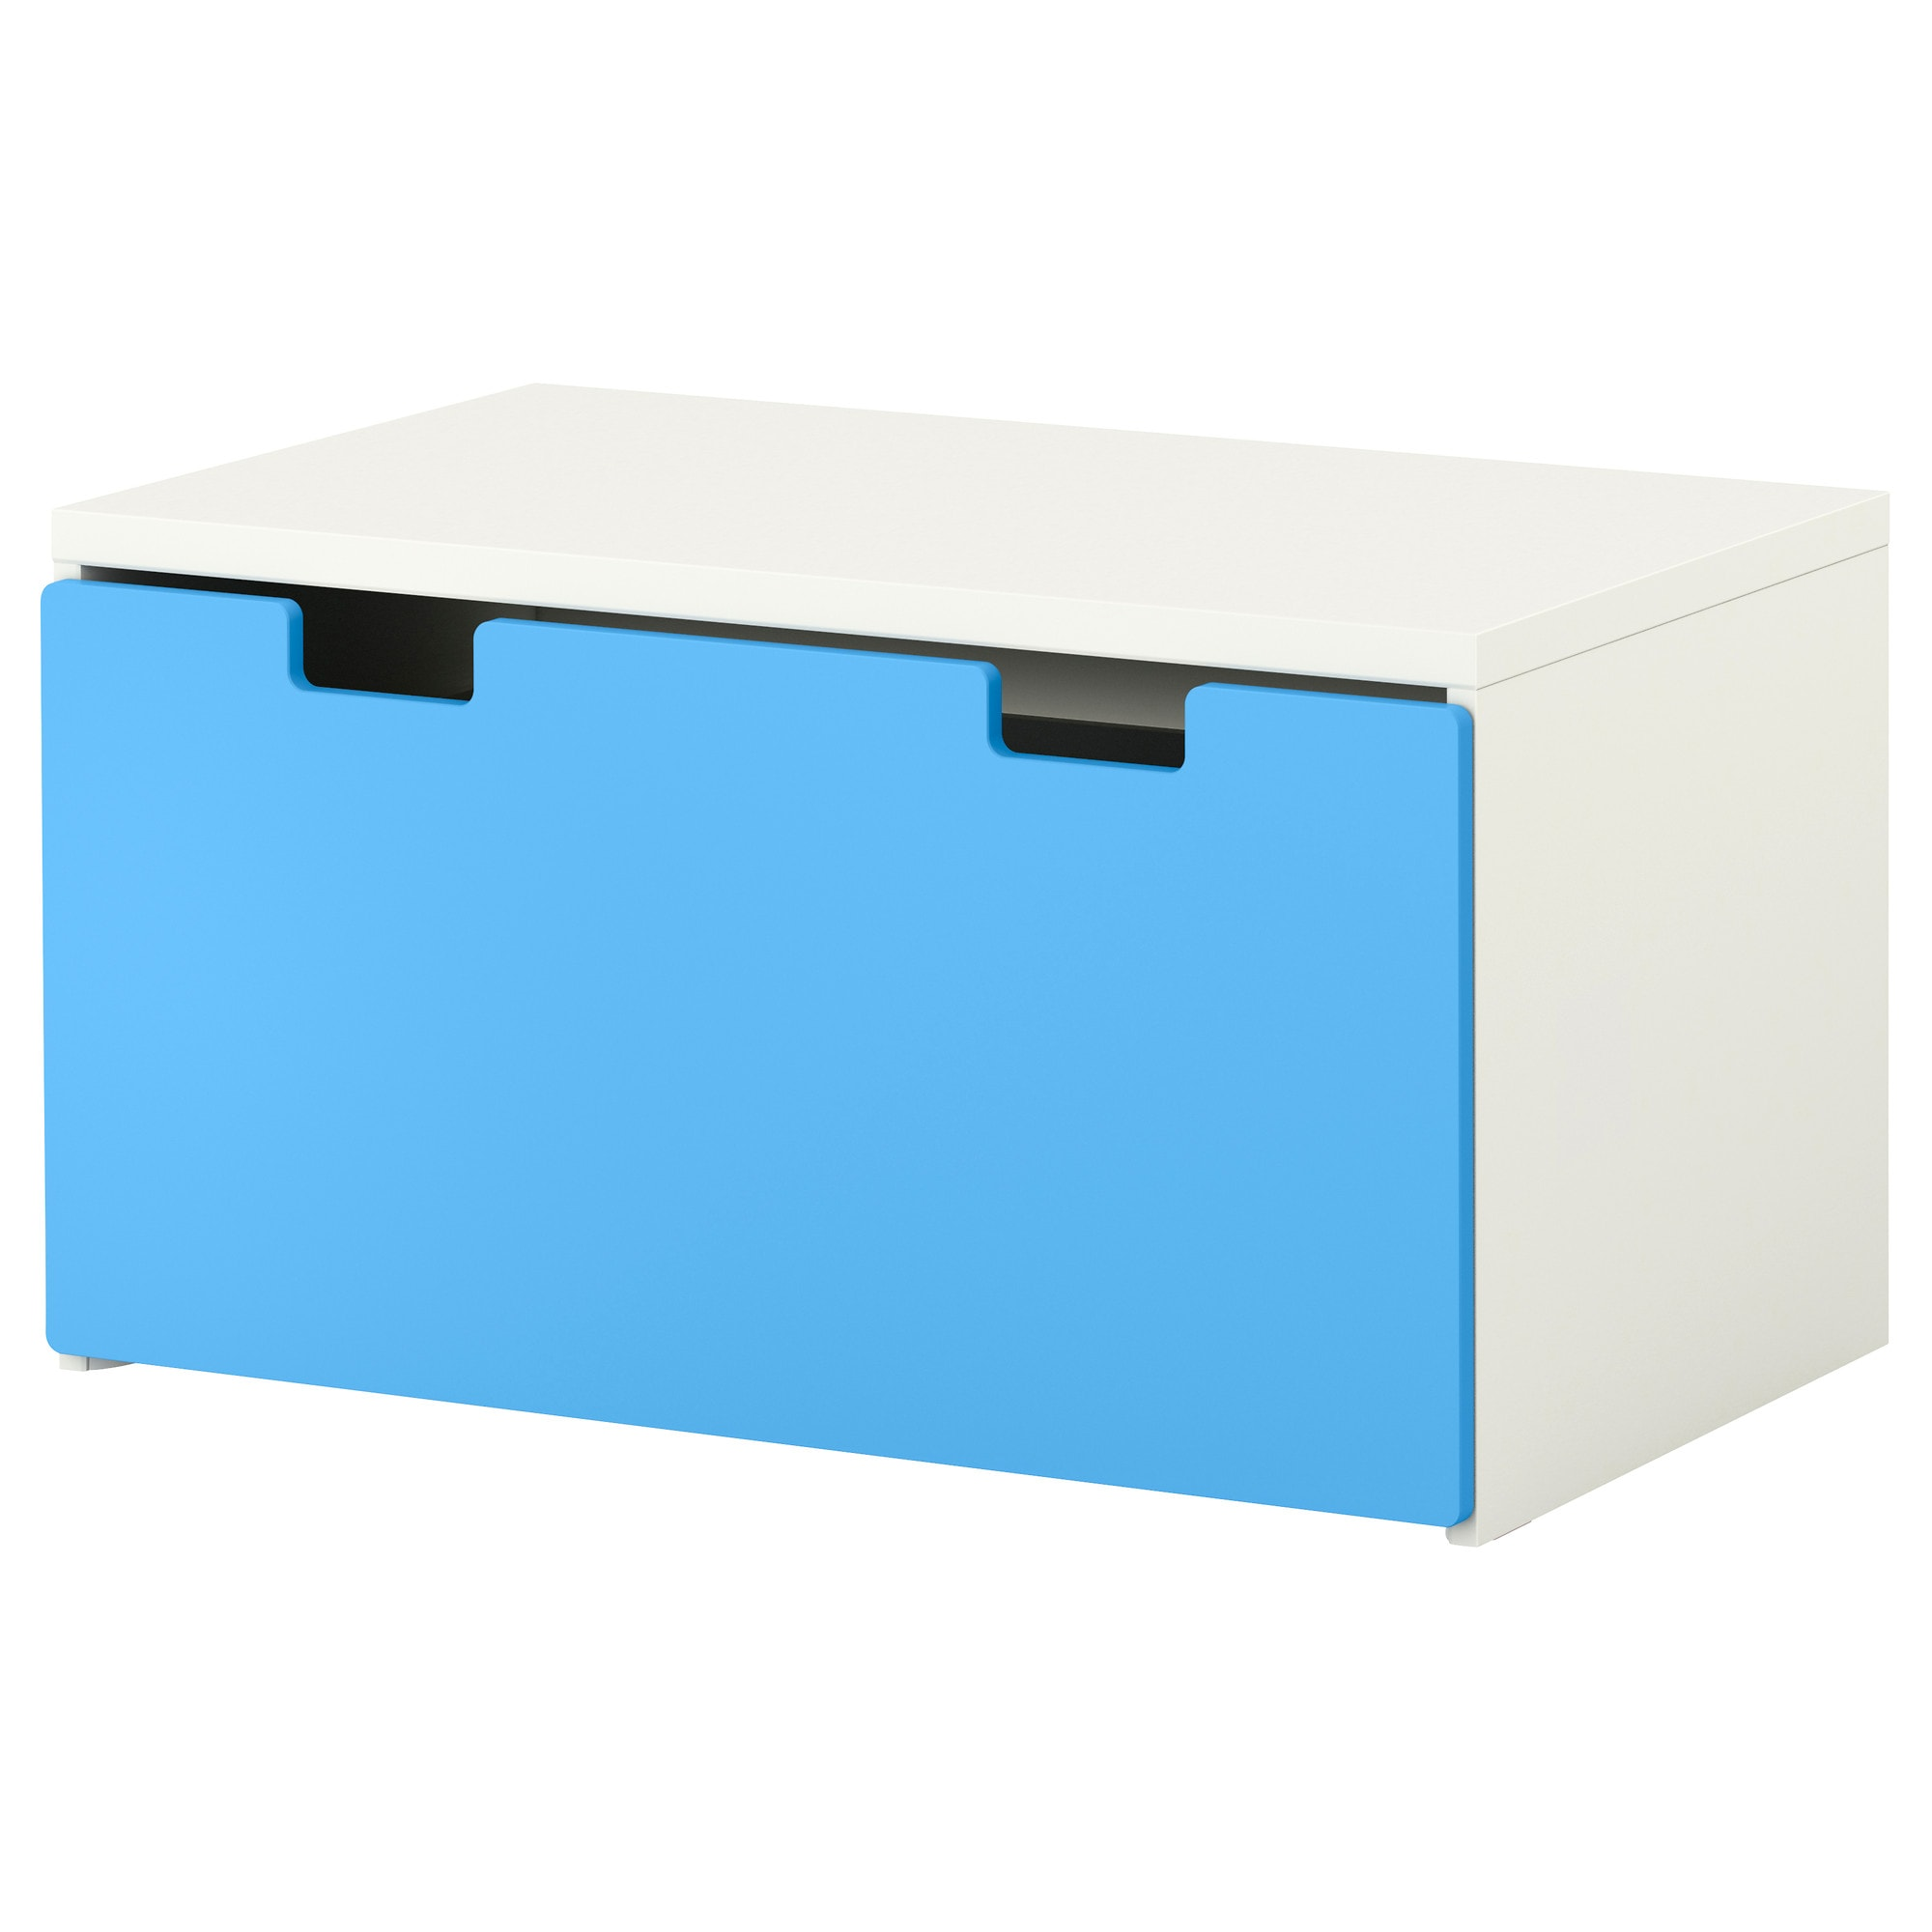 beautiful coffre a jouets ikea 6 stuva banc avec rangement blanc bleu ikea. Black Bedroom Furniture Sets. Home Design Ideas